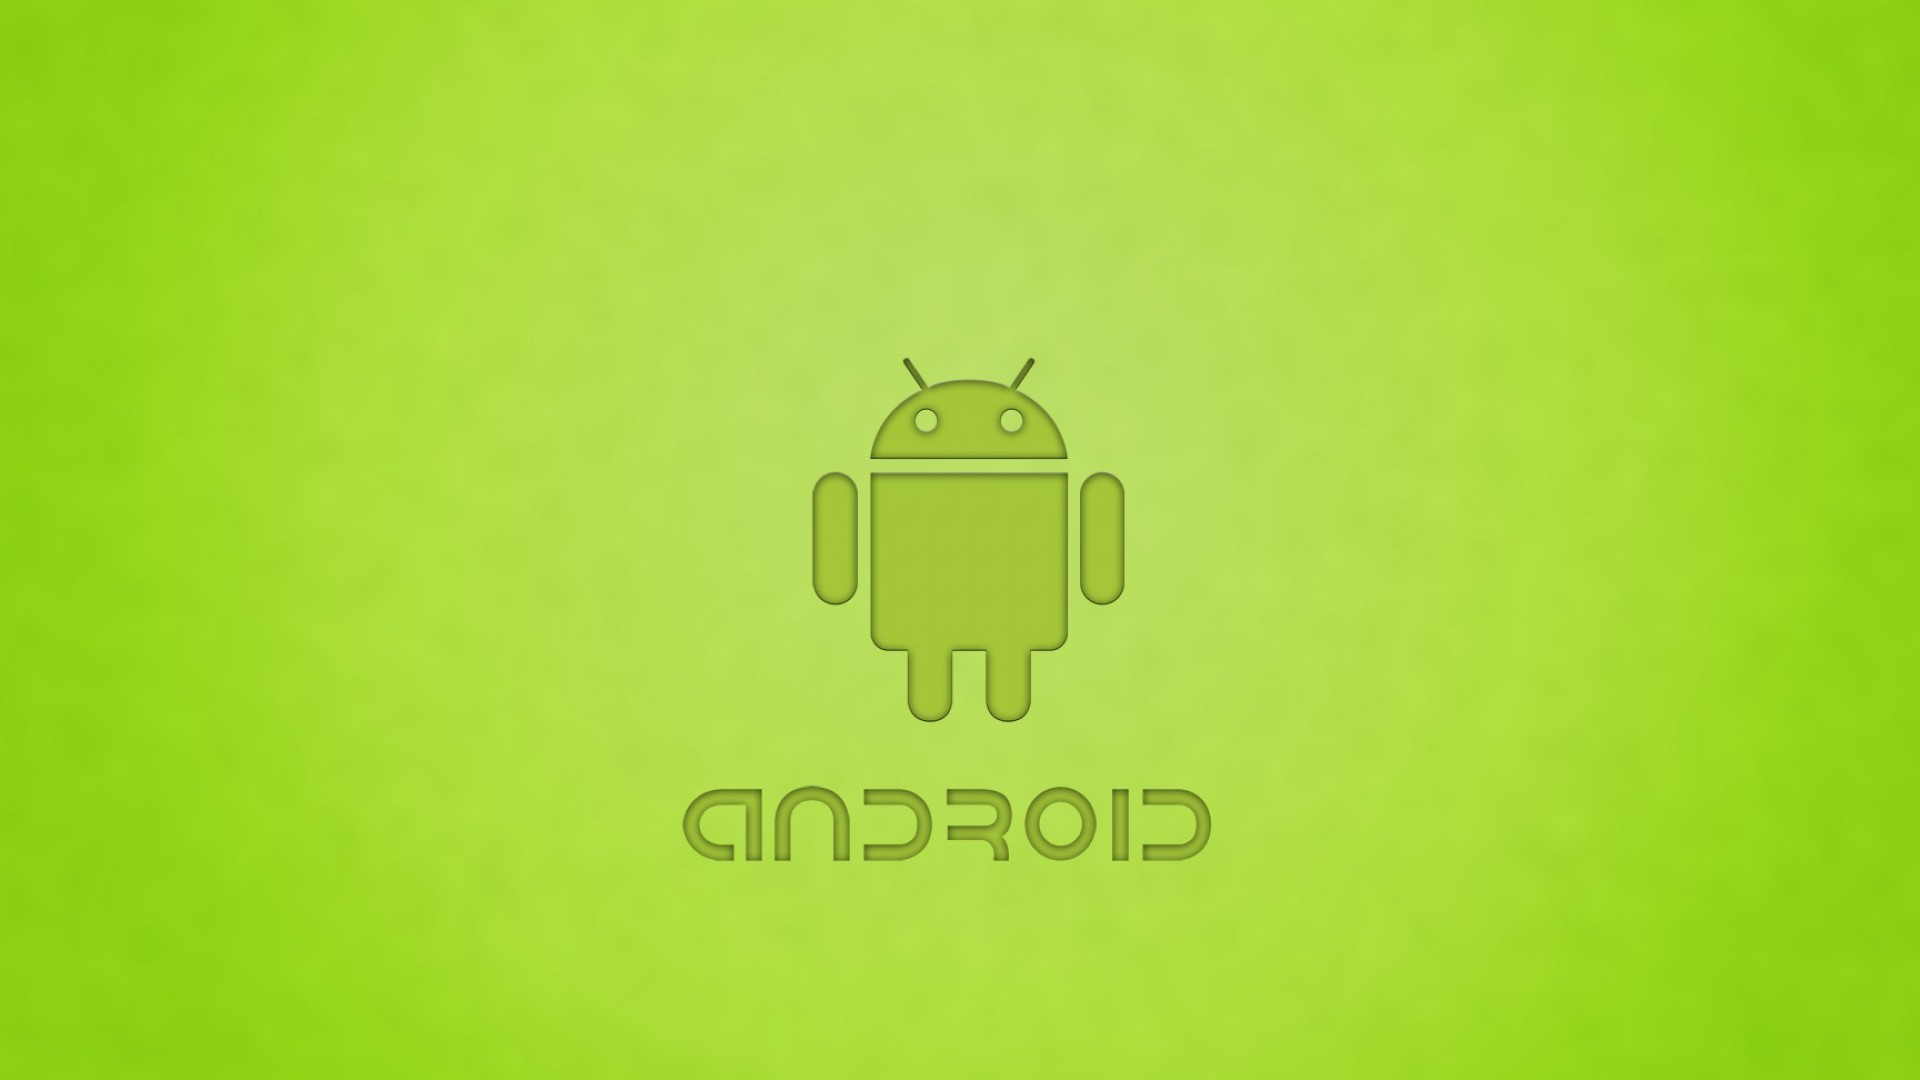 Android HD Wallpapers 1080p